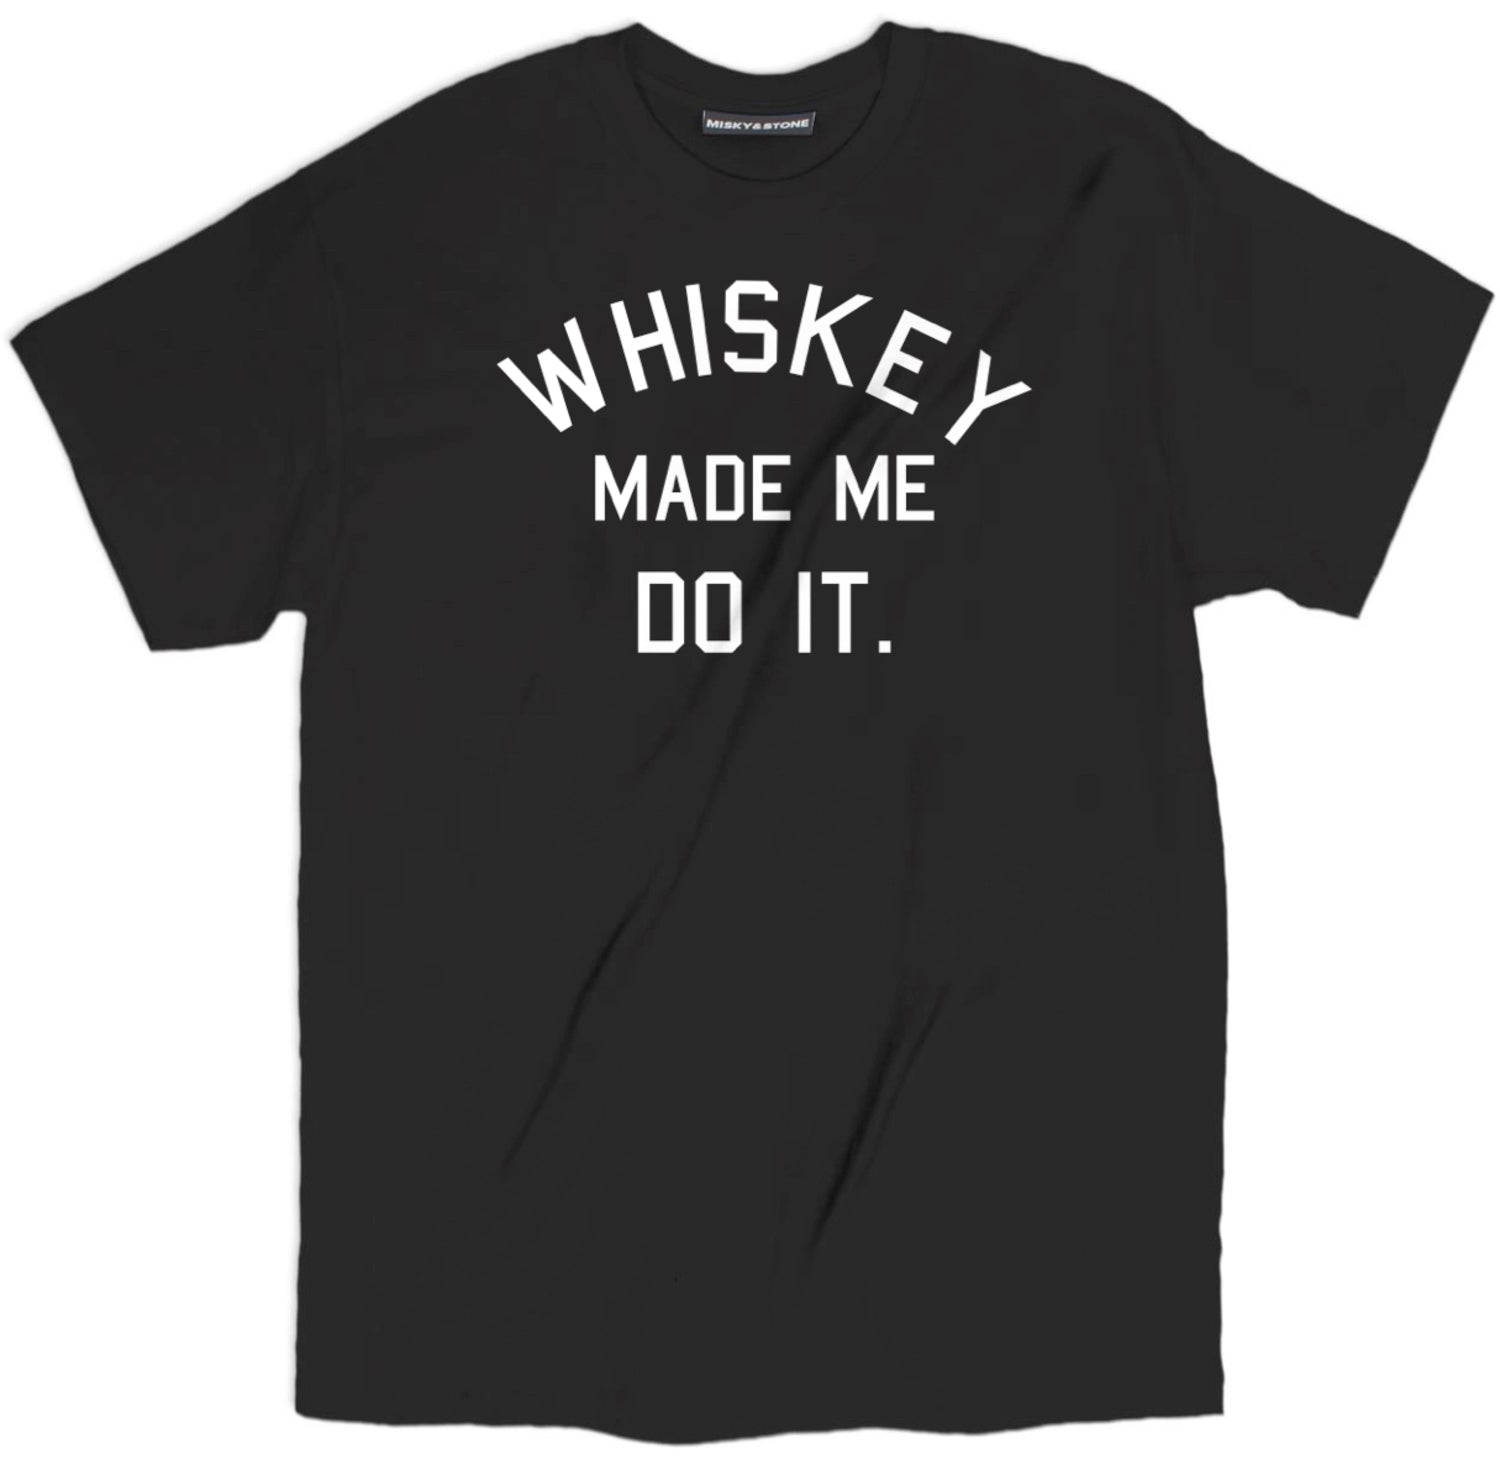 whiskey made me do it t shirt, whiskey tee, blame it on the alcohol t shirt, drinking shirts, funny beer shirts, funny drinking shirts, funny tee shirts, beer shirts, day drunk shirt, funny drunk shirts, funny beer t shirts, cool tees, college shirts, drunk t shirts, drunk shirts, drunk 1 drunk 2 shirts